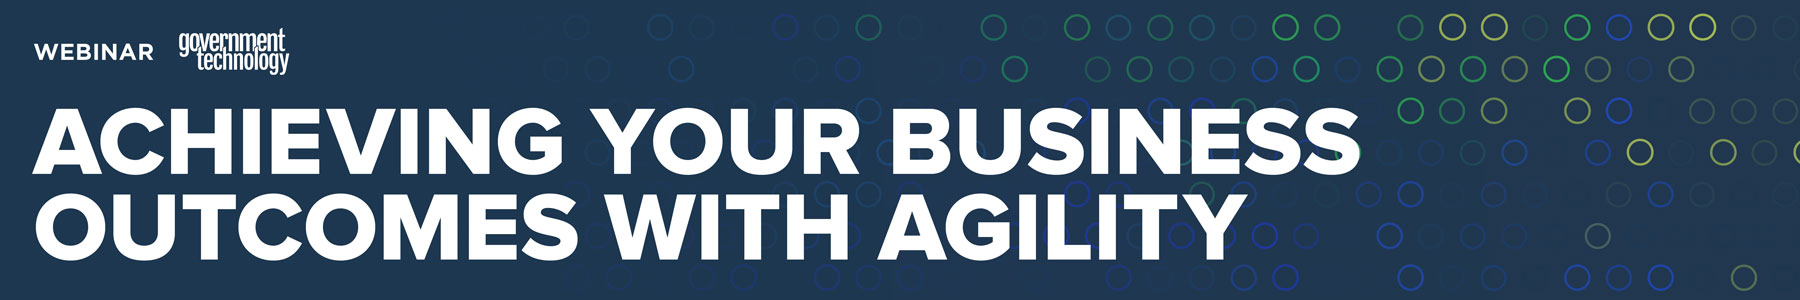 Achieving Your Business Outcomes with Agility